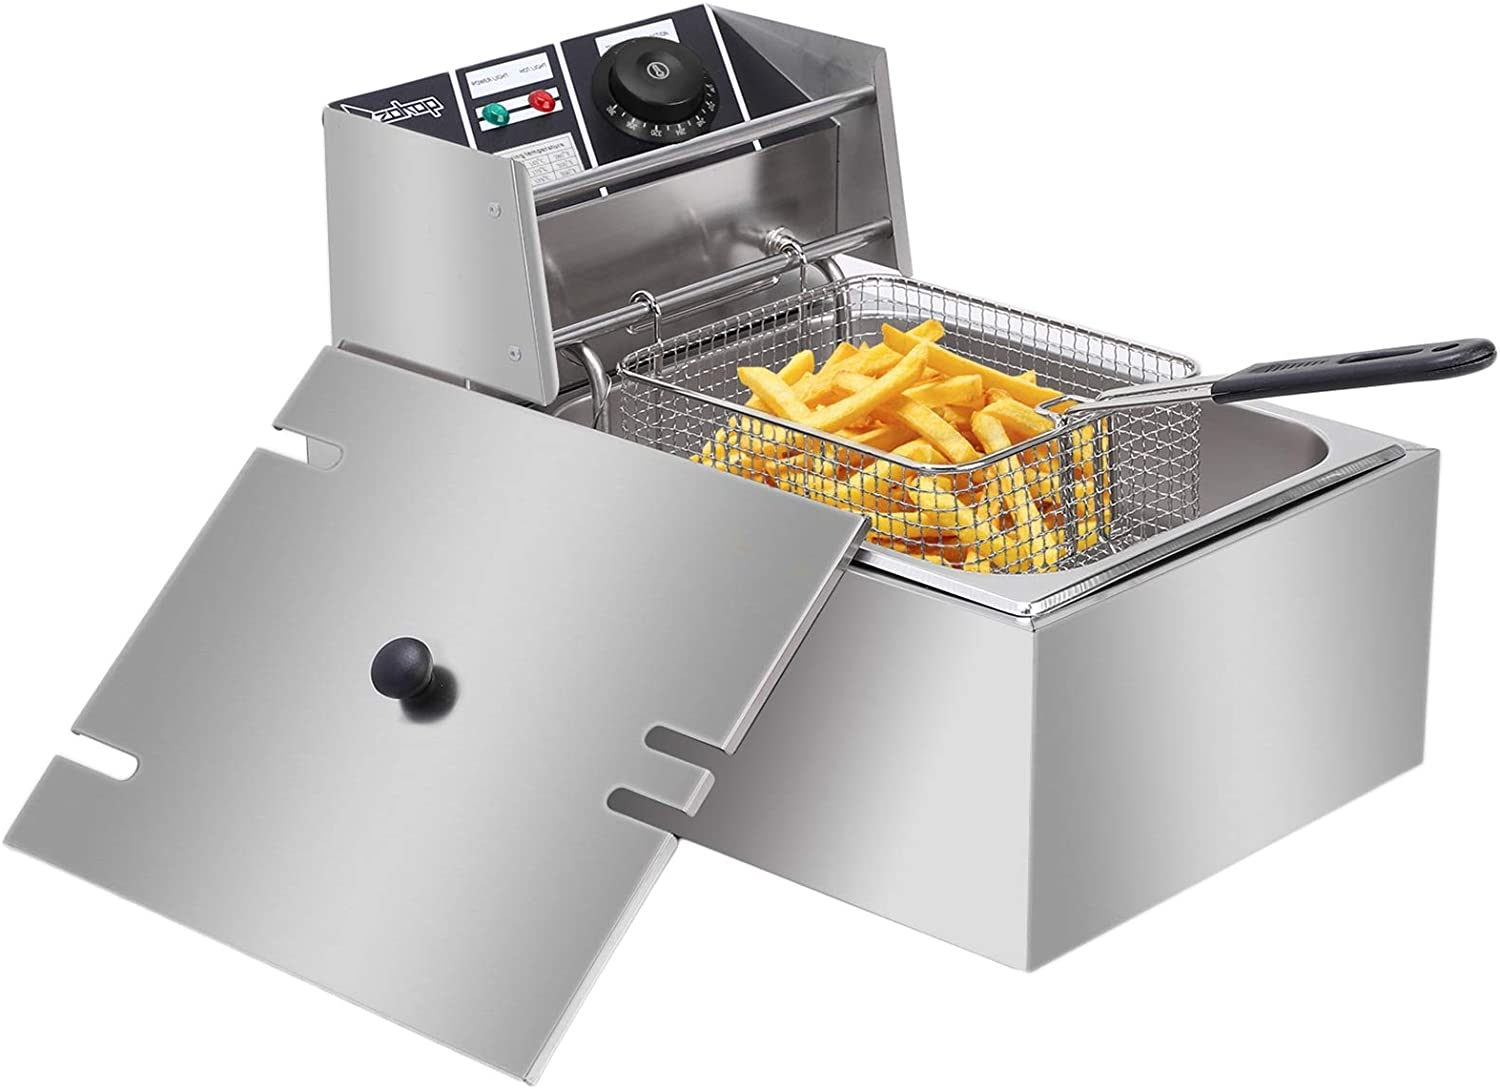 2500W Deep Fryers for the Home with Baskets & Lids,Commercial Deep Fryer 6.3QT Electric Deep Fryer with Temperature Control,Stainless Steel Fry Daddy Deep Fryer (Silver)